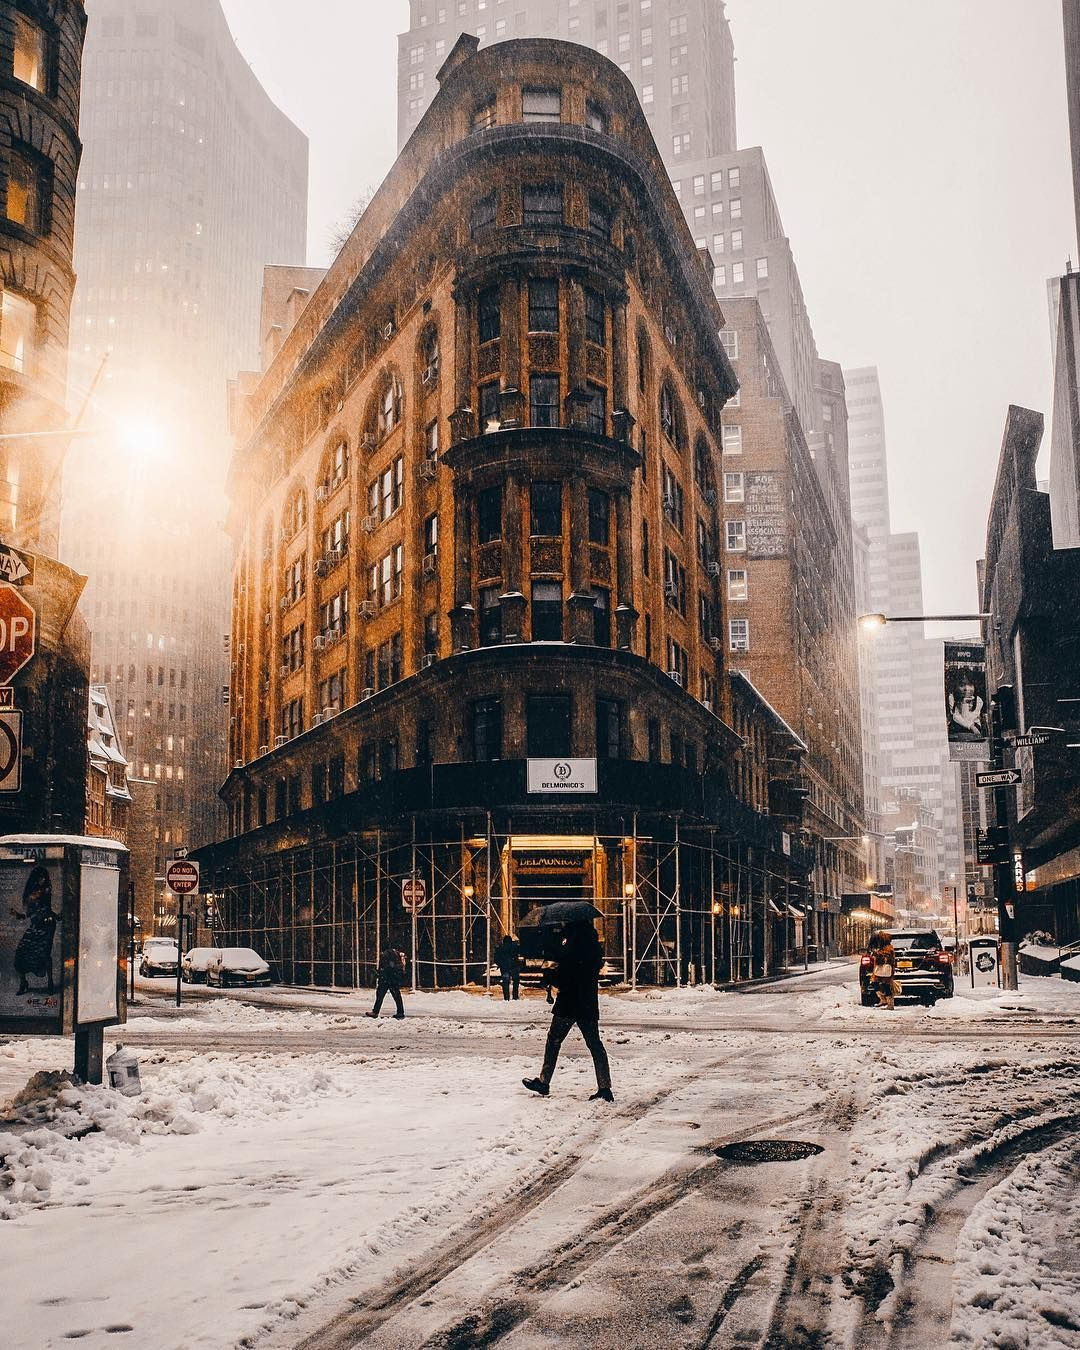 Inspiration for any city shots you do during your travels. Vibrant Street Photographs of New York City by Henry Kornaros.